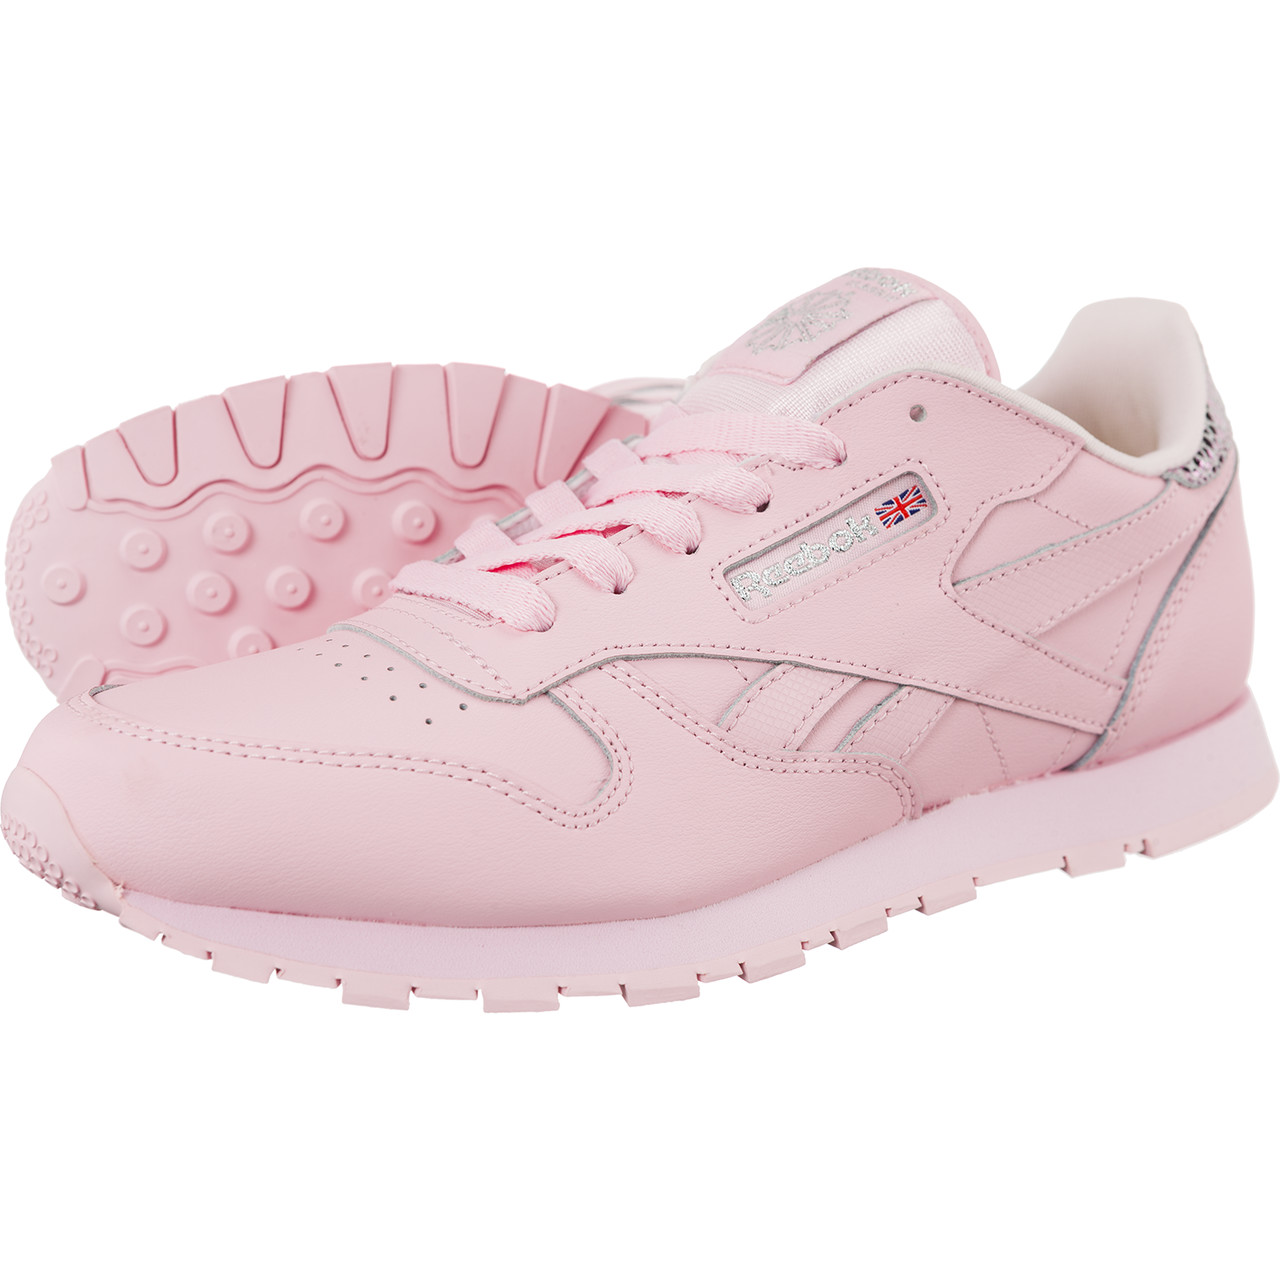 ca44a340 Buty Reebok CLASSIC LEATHER 898 - eastend.pl